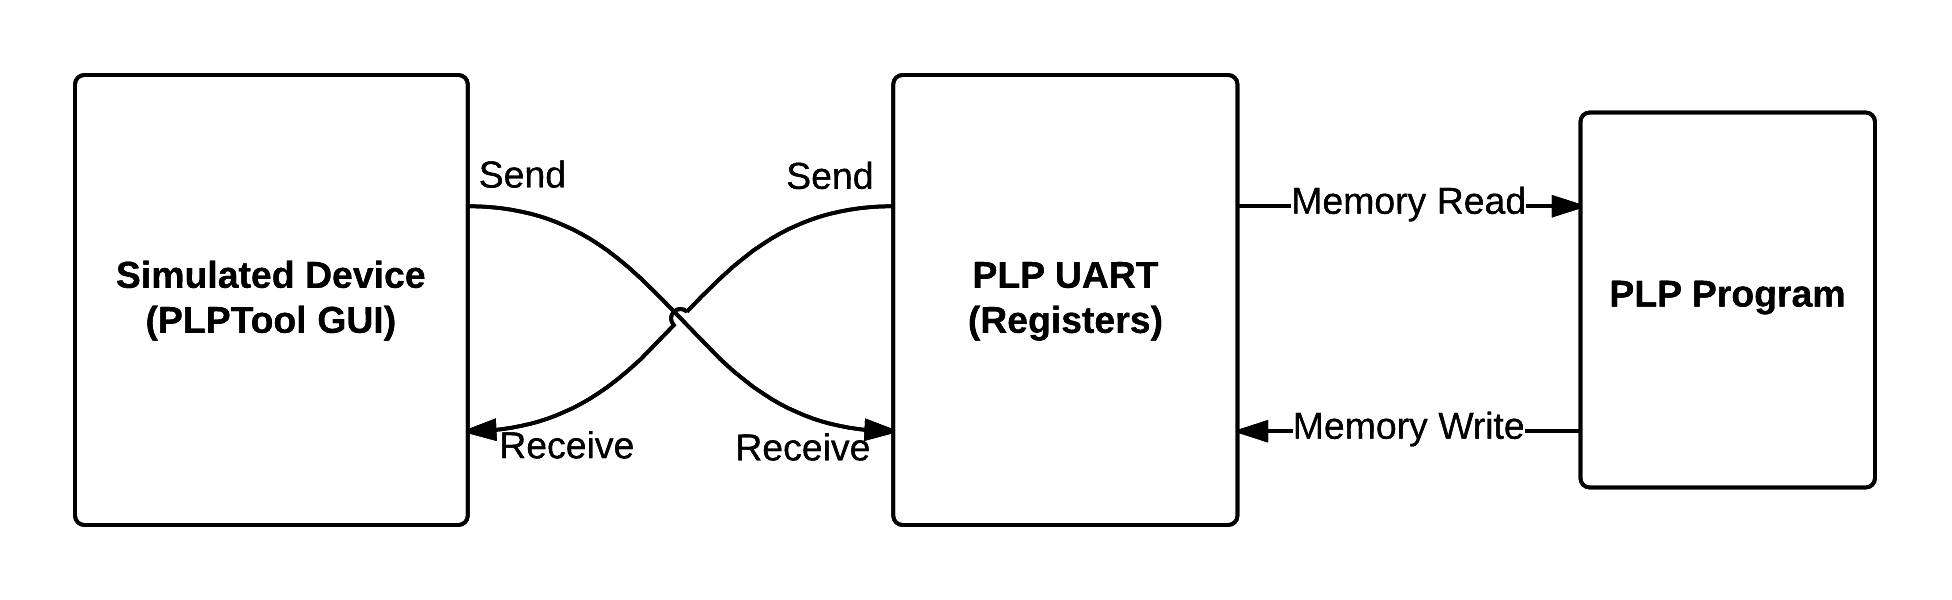 Plp Implementation Uart Pin Diagram The Following Illustrates How Interacts With Both Simulated Device And A Program